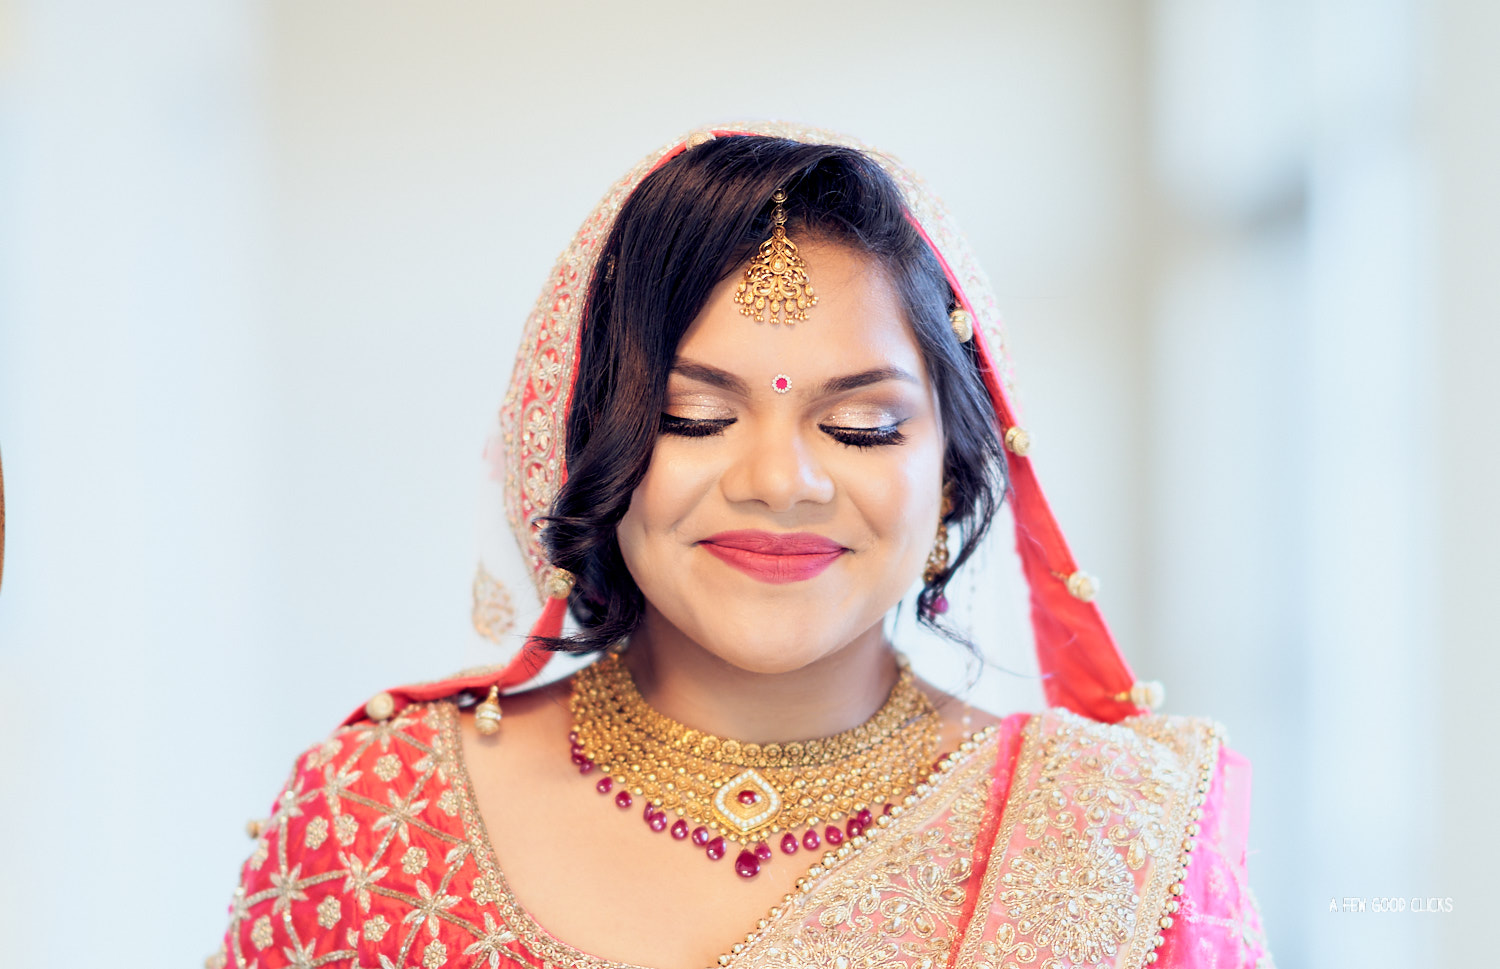 indian-bride-wedding-photography-at-sunnyvale-hindu-temple-ca